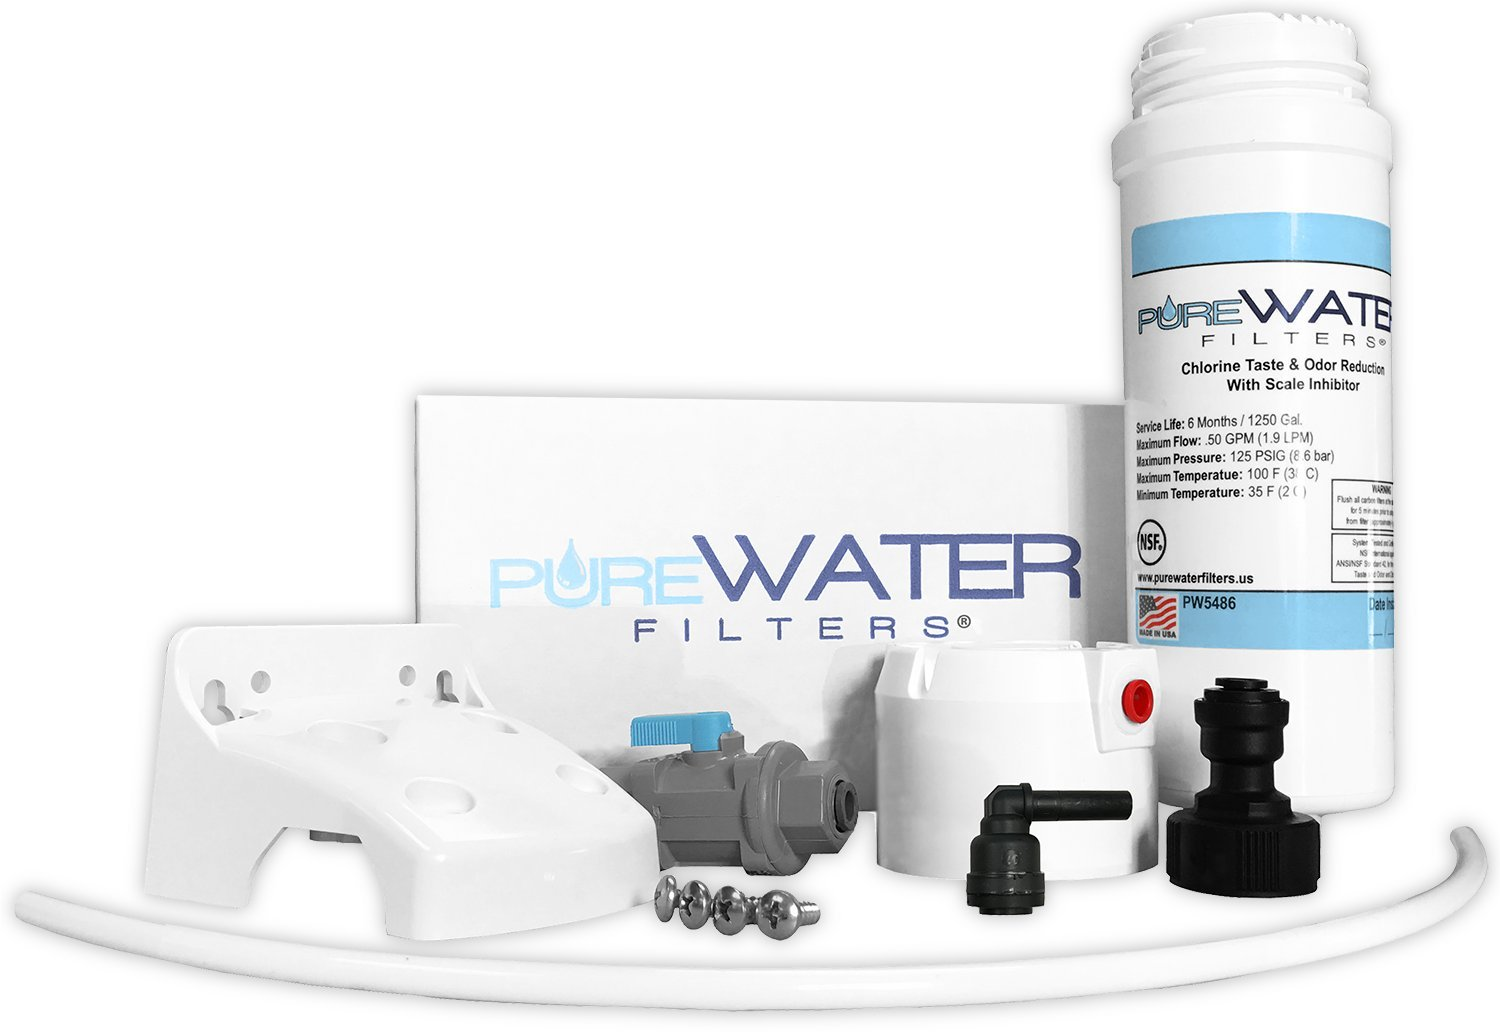 Keurig B150, B200, B3000, B3000se, Deluxe Filter Kit by PureWater Filters